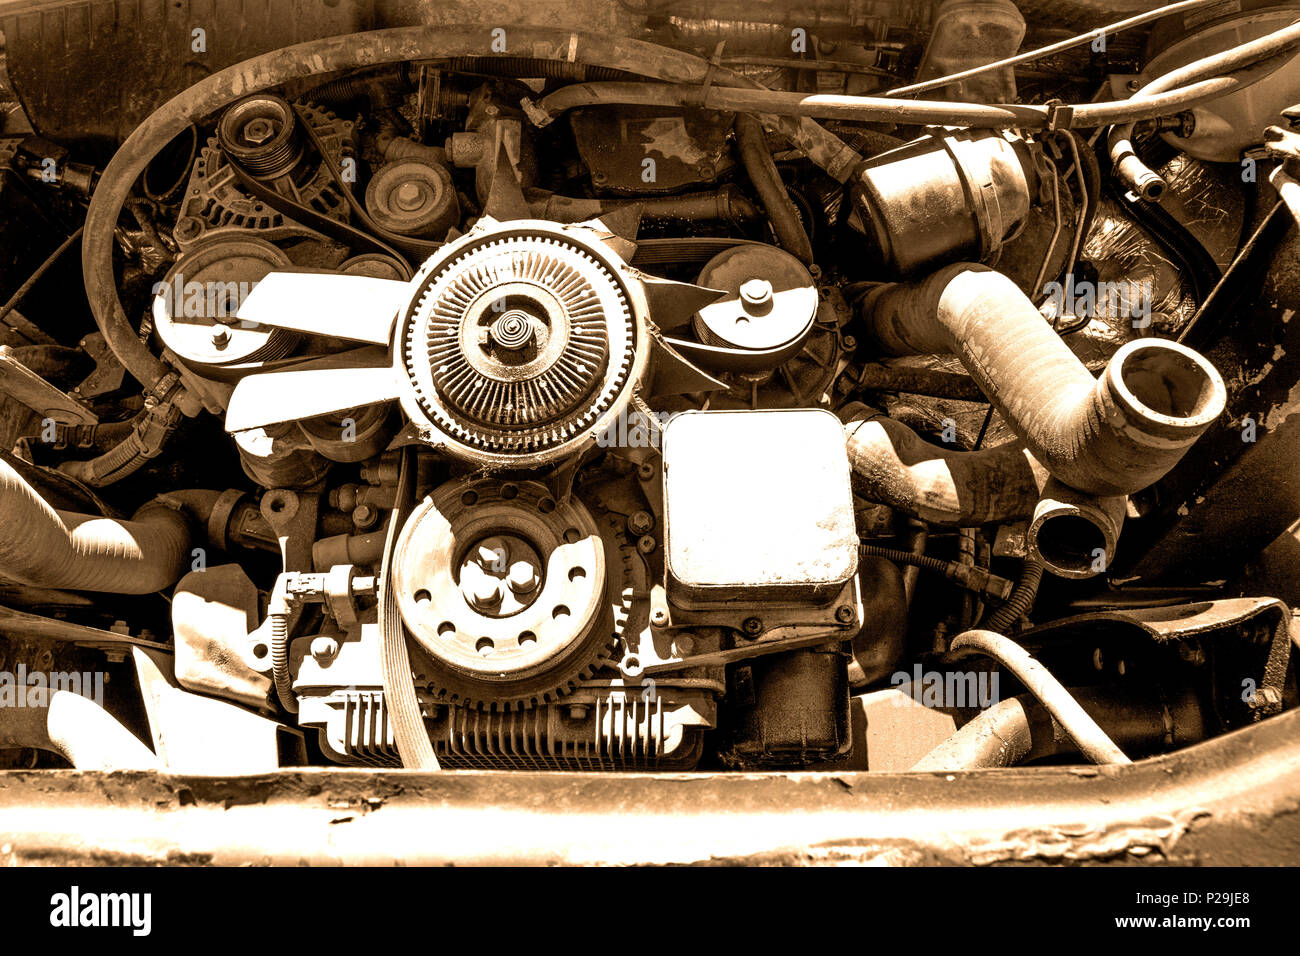 Old broken and dirty car engine close up, view under the hood in sepia tones - Stock Image